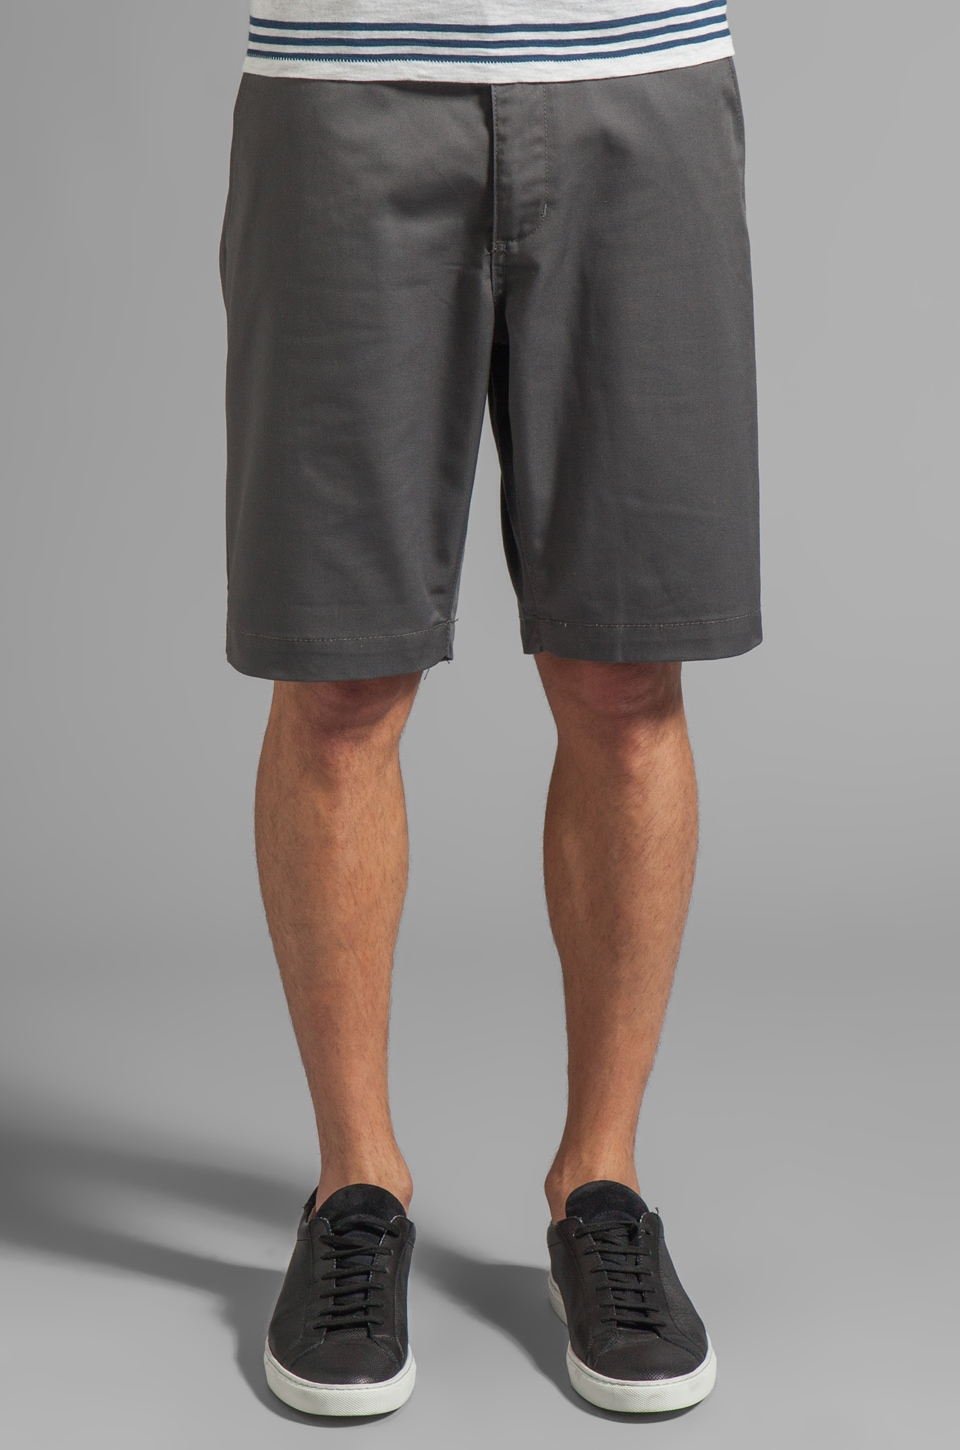 RVCA Sunday Chino Short in Pavement